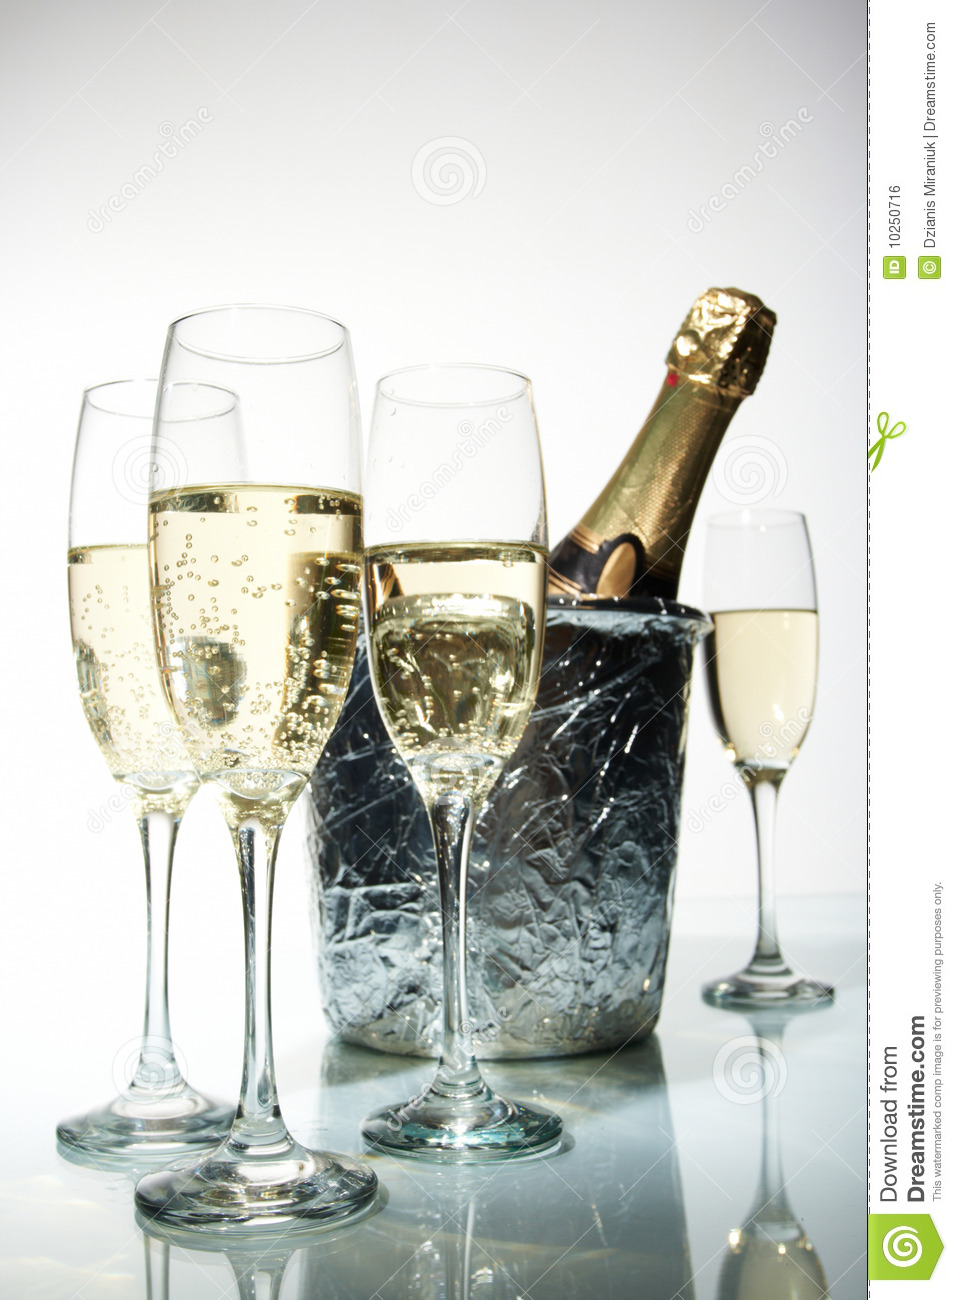 champagne flutes and ice bucket royalty free stock image. Black Bedroom Furniture Sets. Home Design Ideas